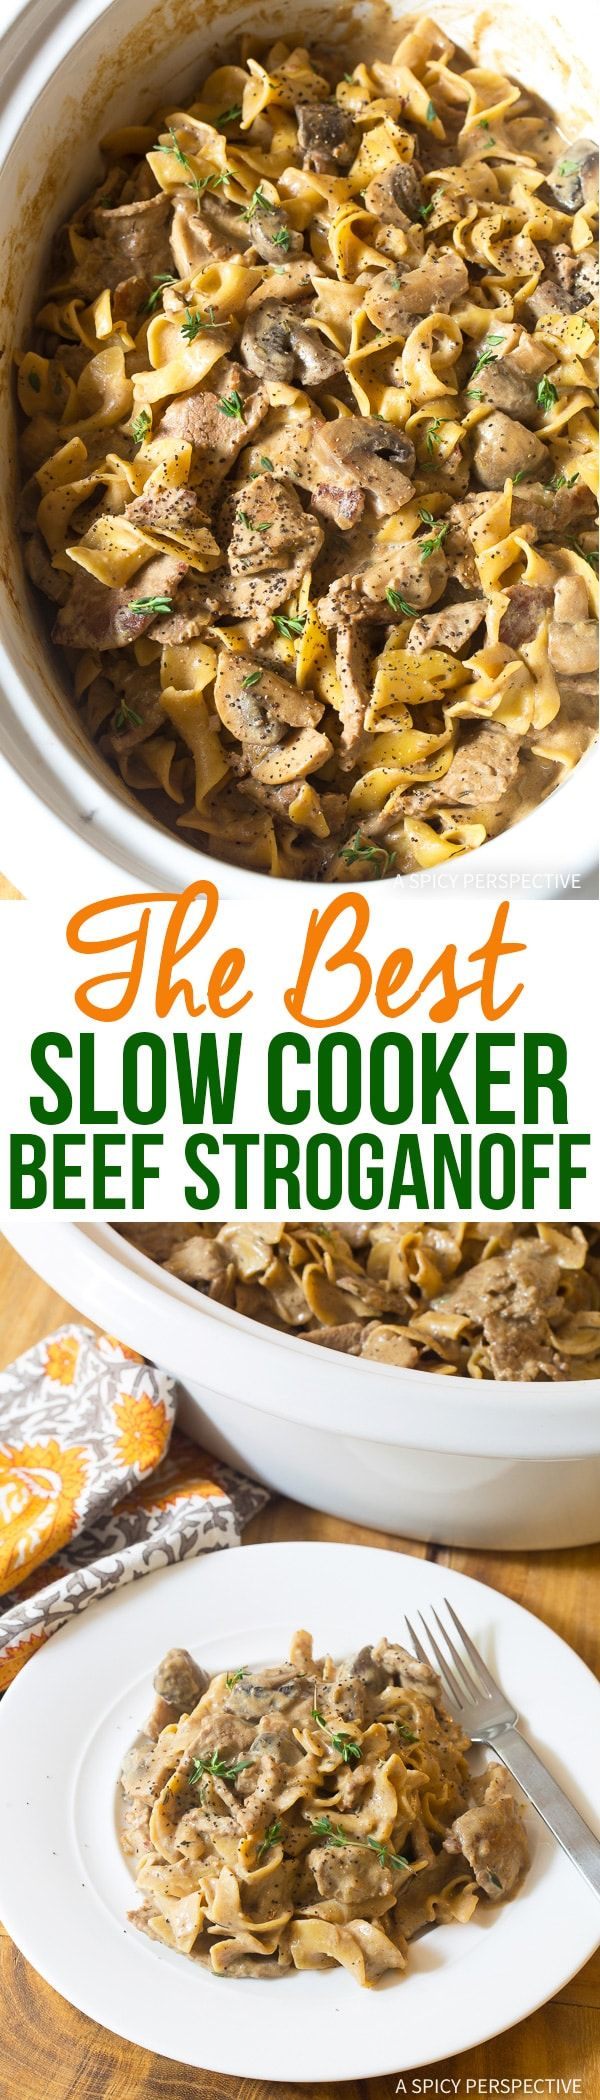 The Best Slow Cooker Beef Stroganoff Recipe - Easy Crock Pot Beef Stroganoff you can make in your Instant Pot or Multi-Cooker. Bold flavor, silky texture! via @spicyperspectiv